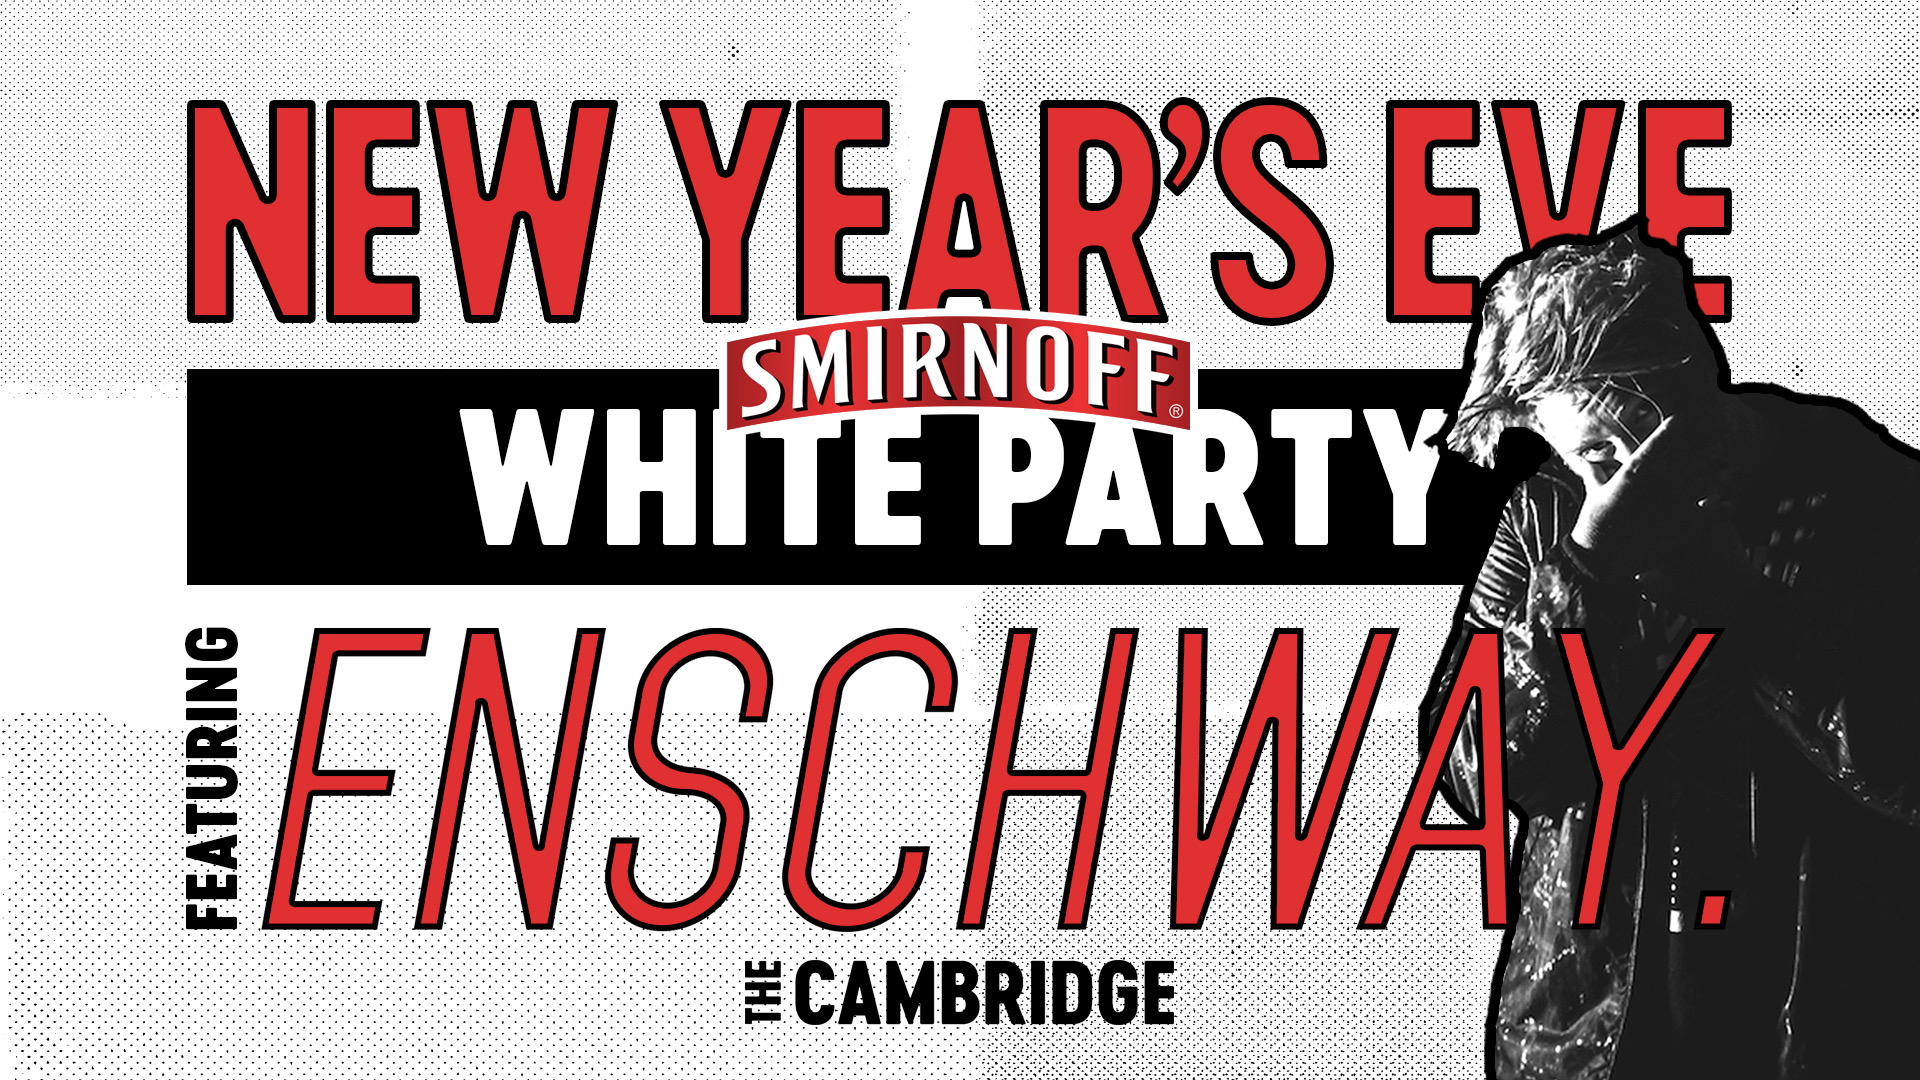 Tickets for NYE Smirnoff White Party ft. ENSCHWAY in Newcastle from Ticketbooth